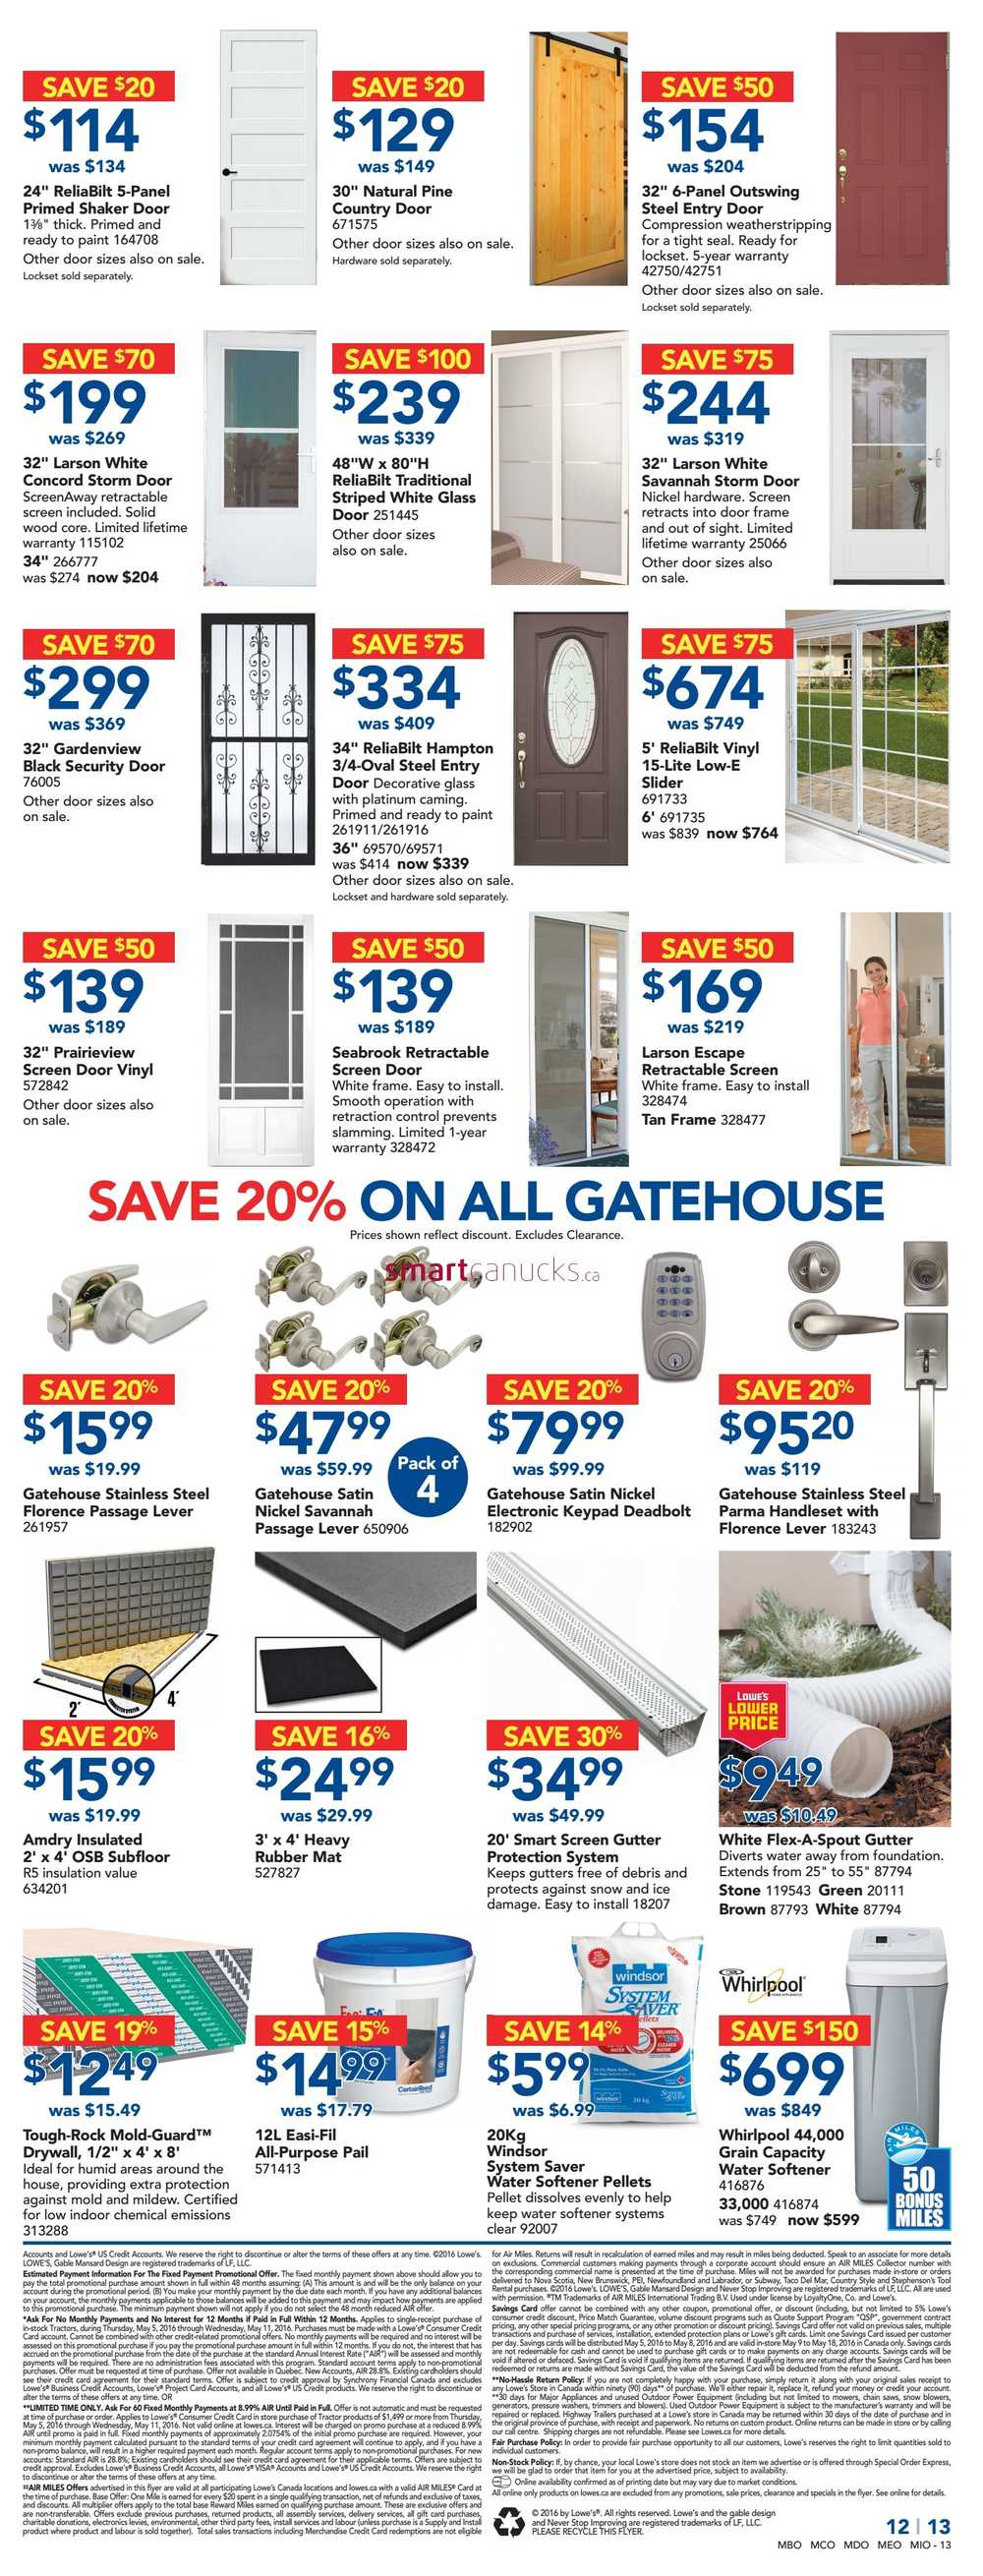 Lowes coupons 2019